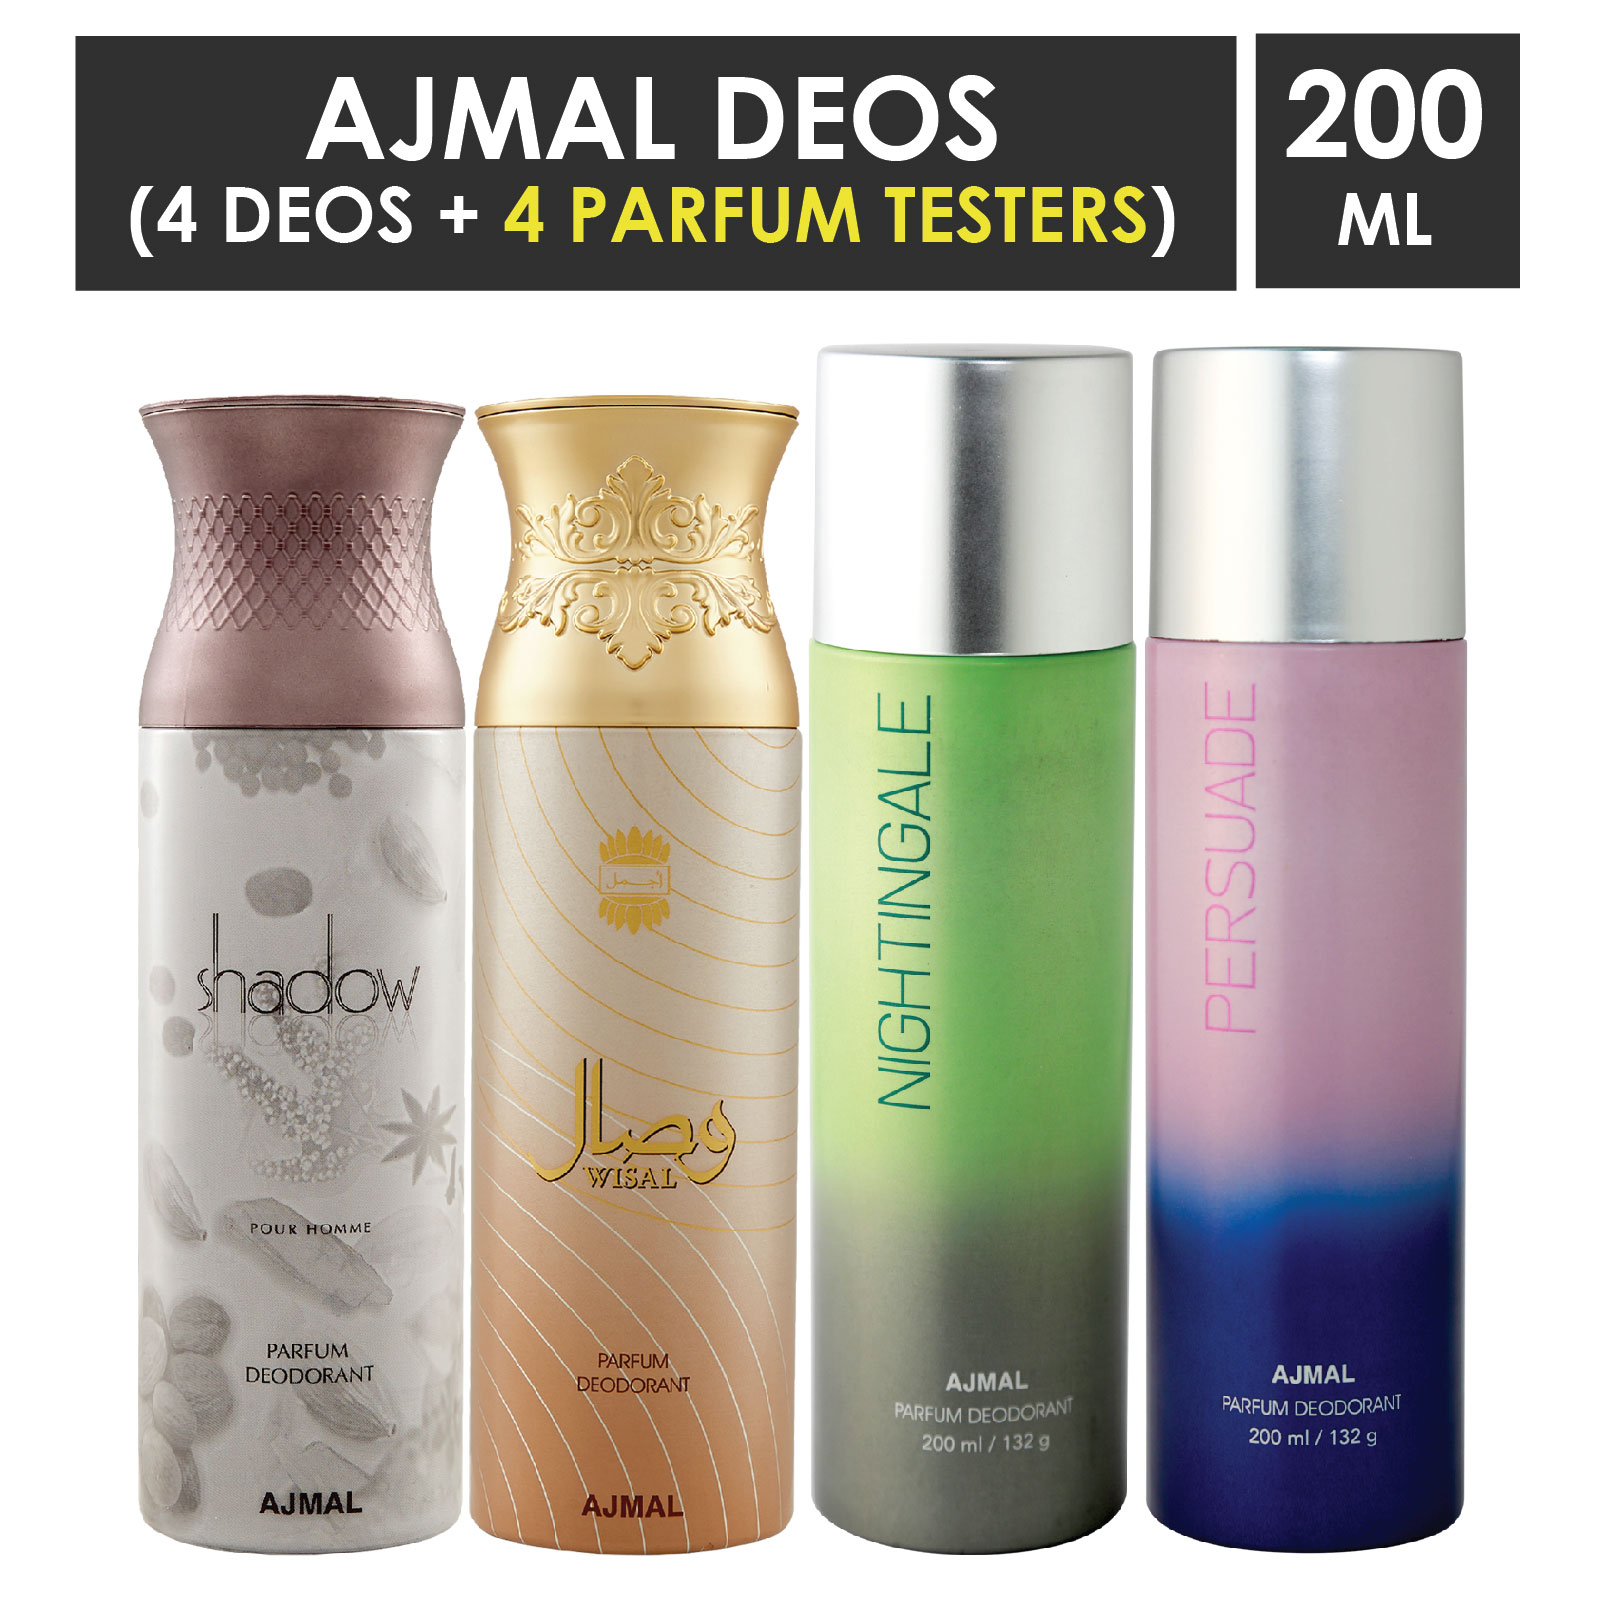 Ajmal   Ajmal 1 Shadow Homme for Men, 1 Wisal for Women, 1 Nightingale and 1 Persuade for Men & Women High Quality Deodorants each 200ML Combo pack of 4 (Total 800ML) + 4 Parfum Testers